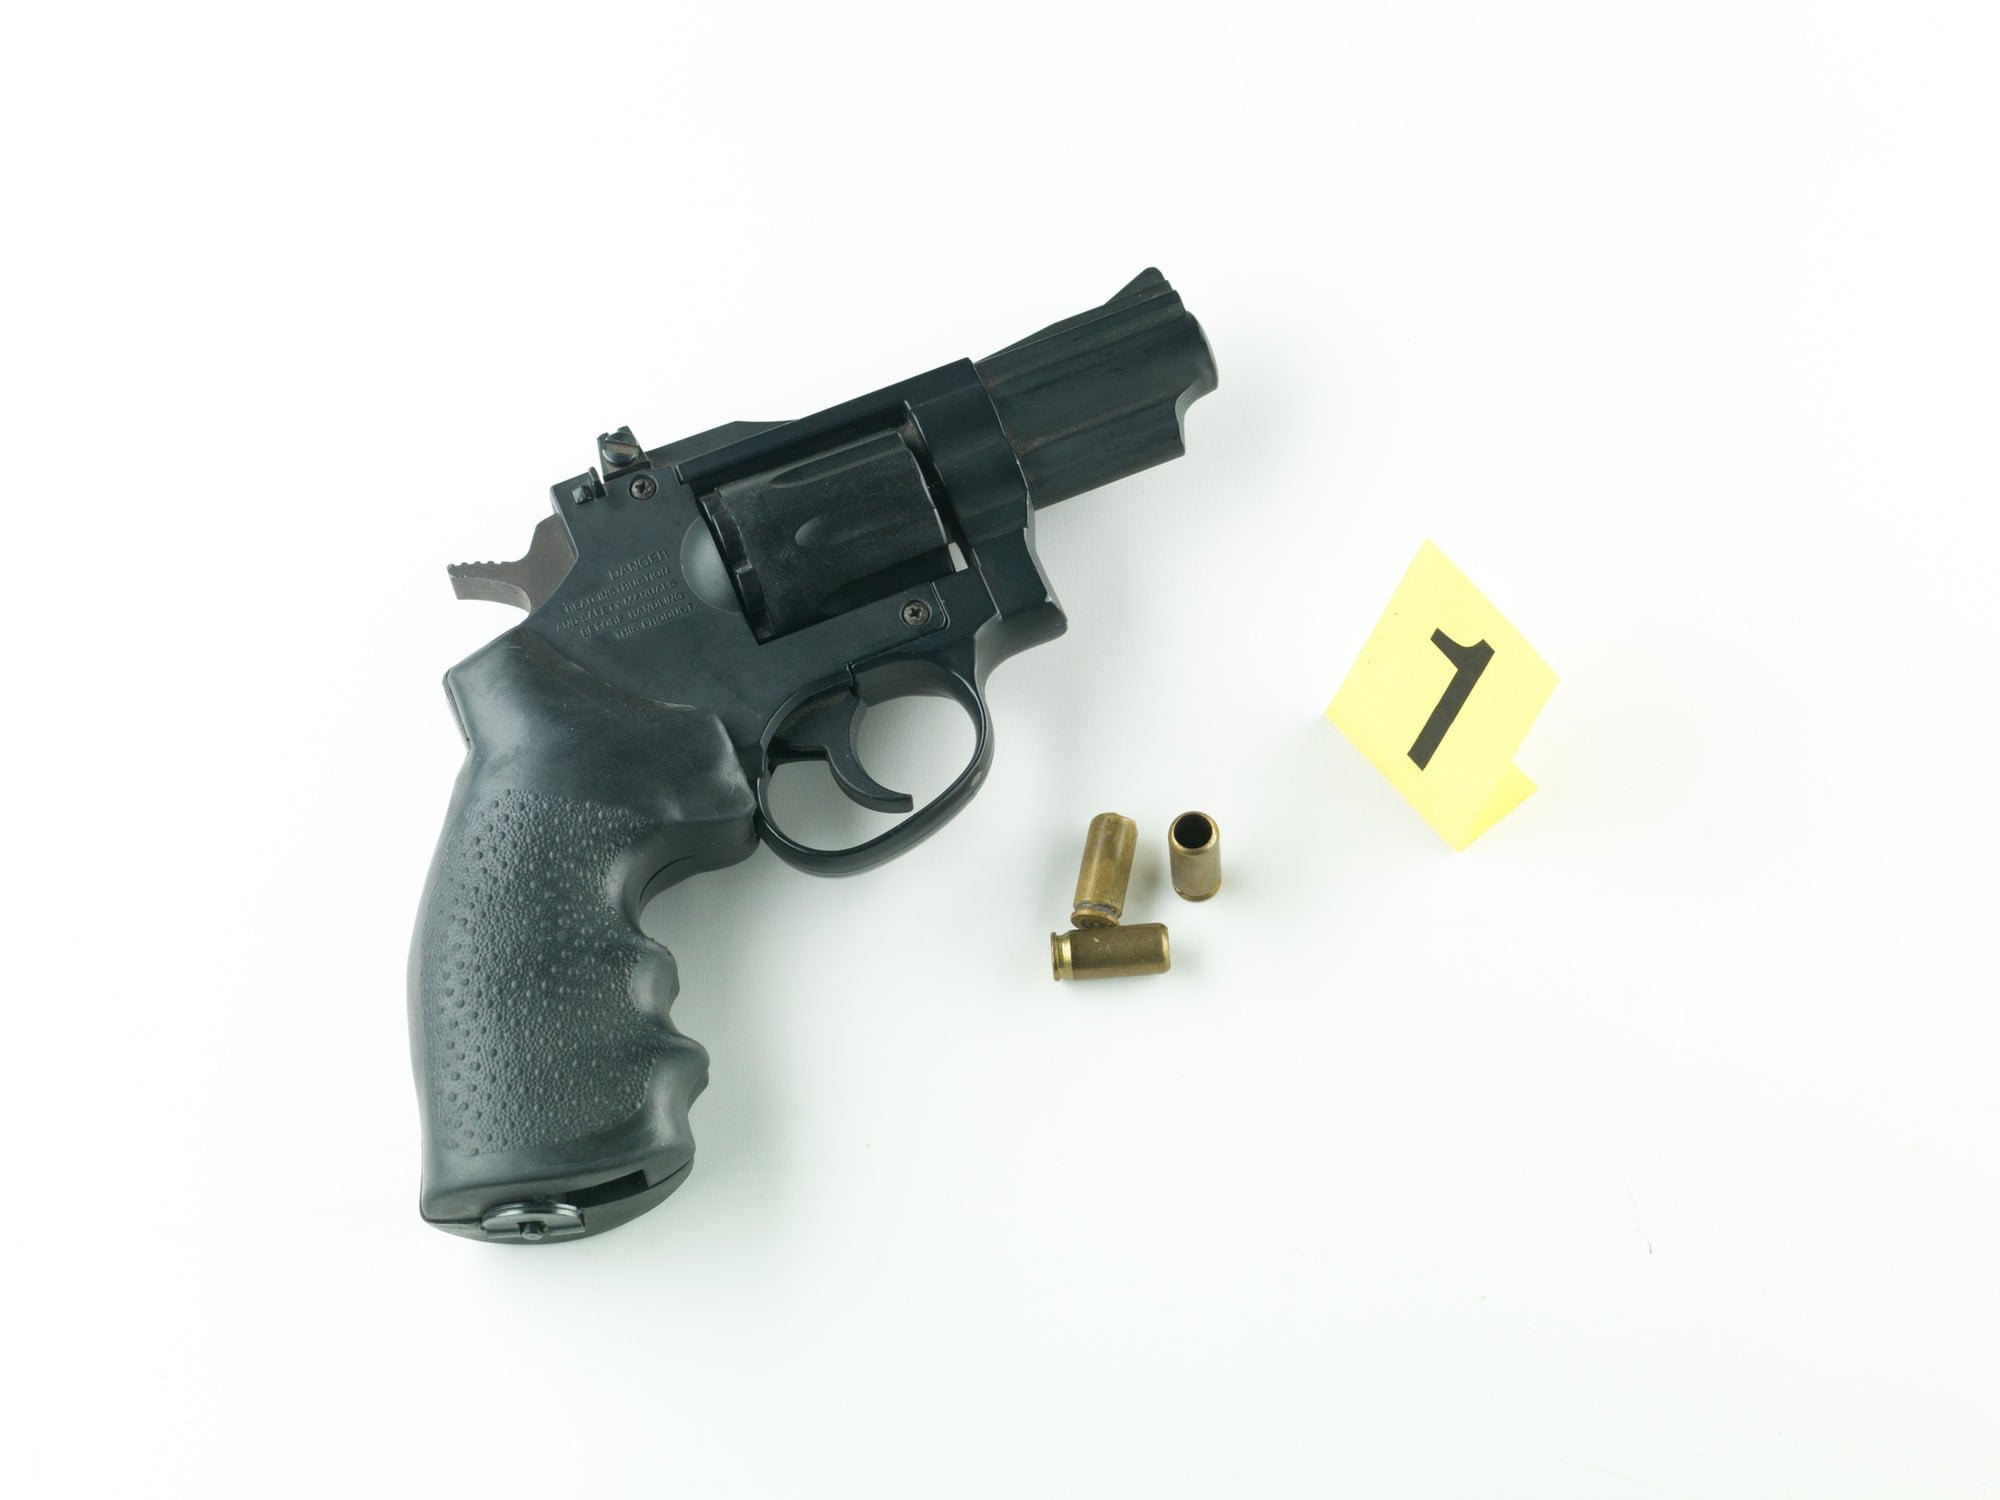 gun and bullet casing evidence